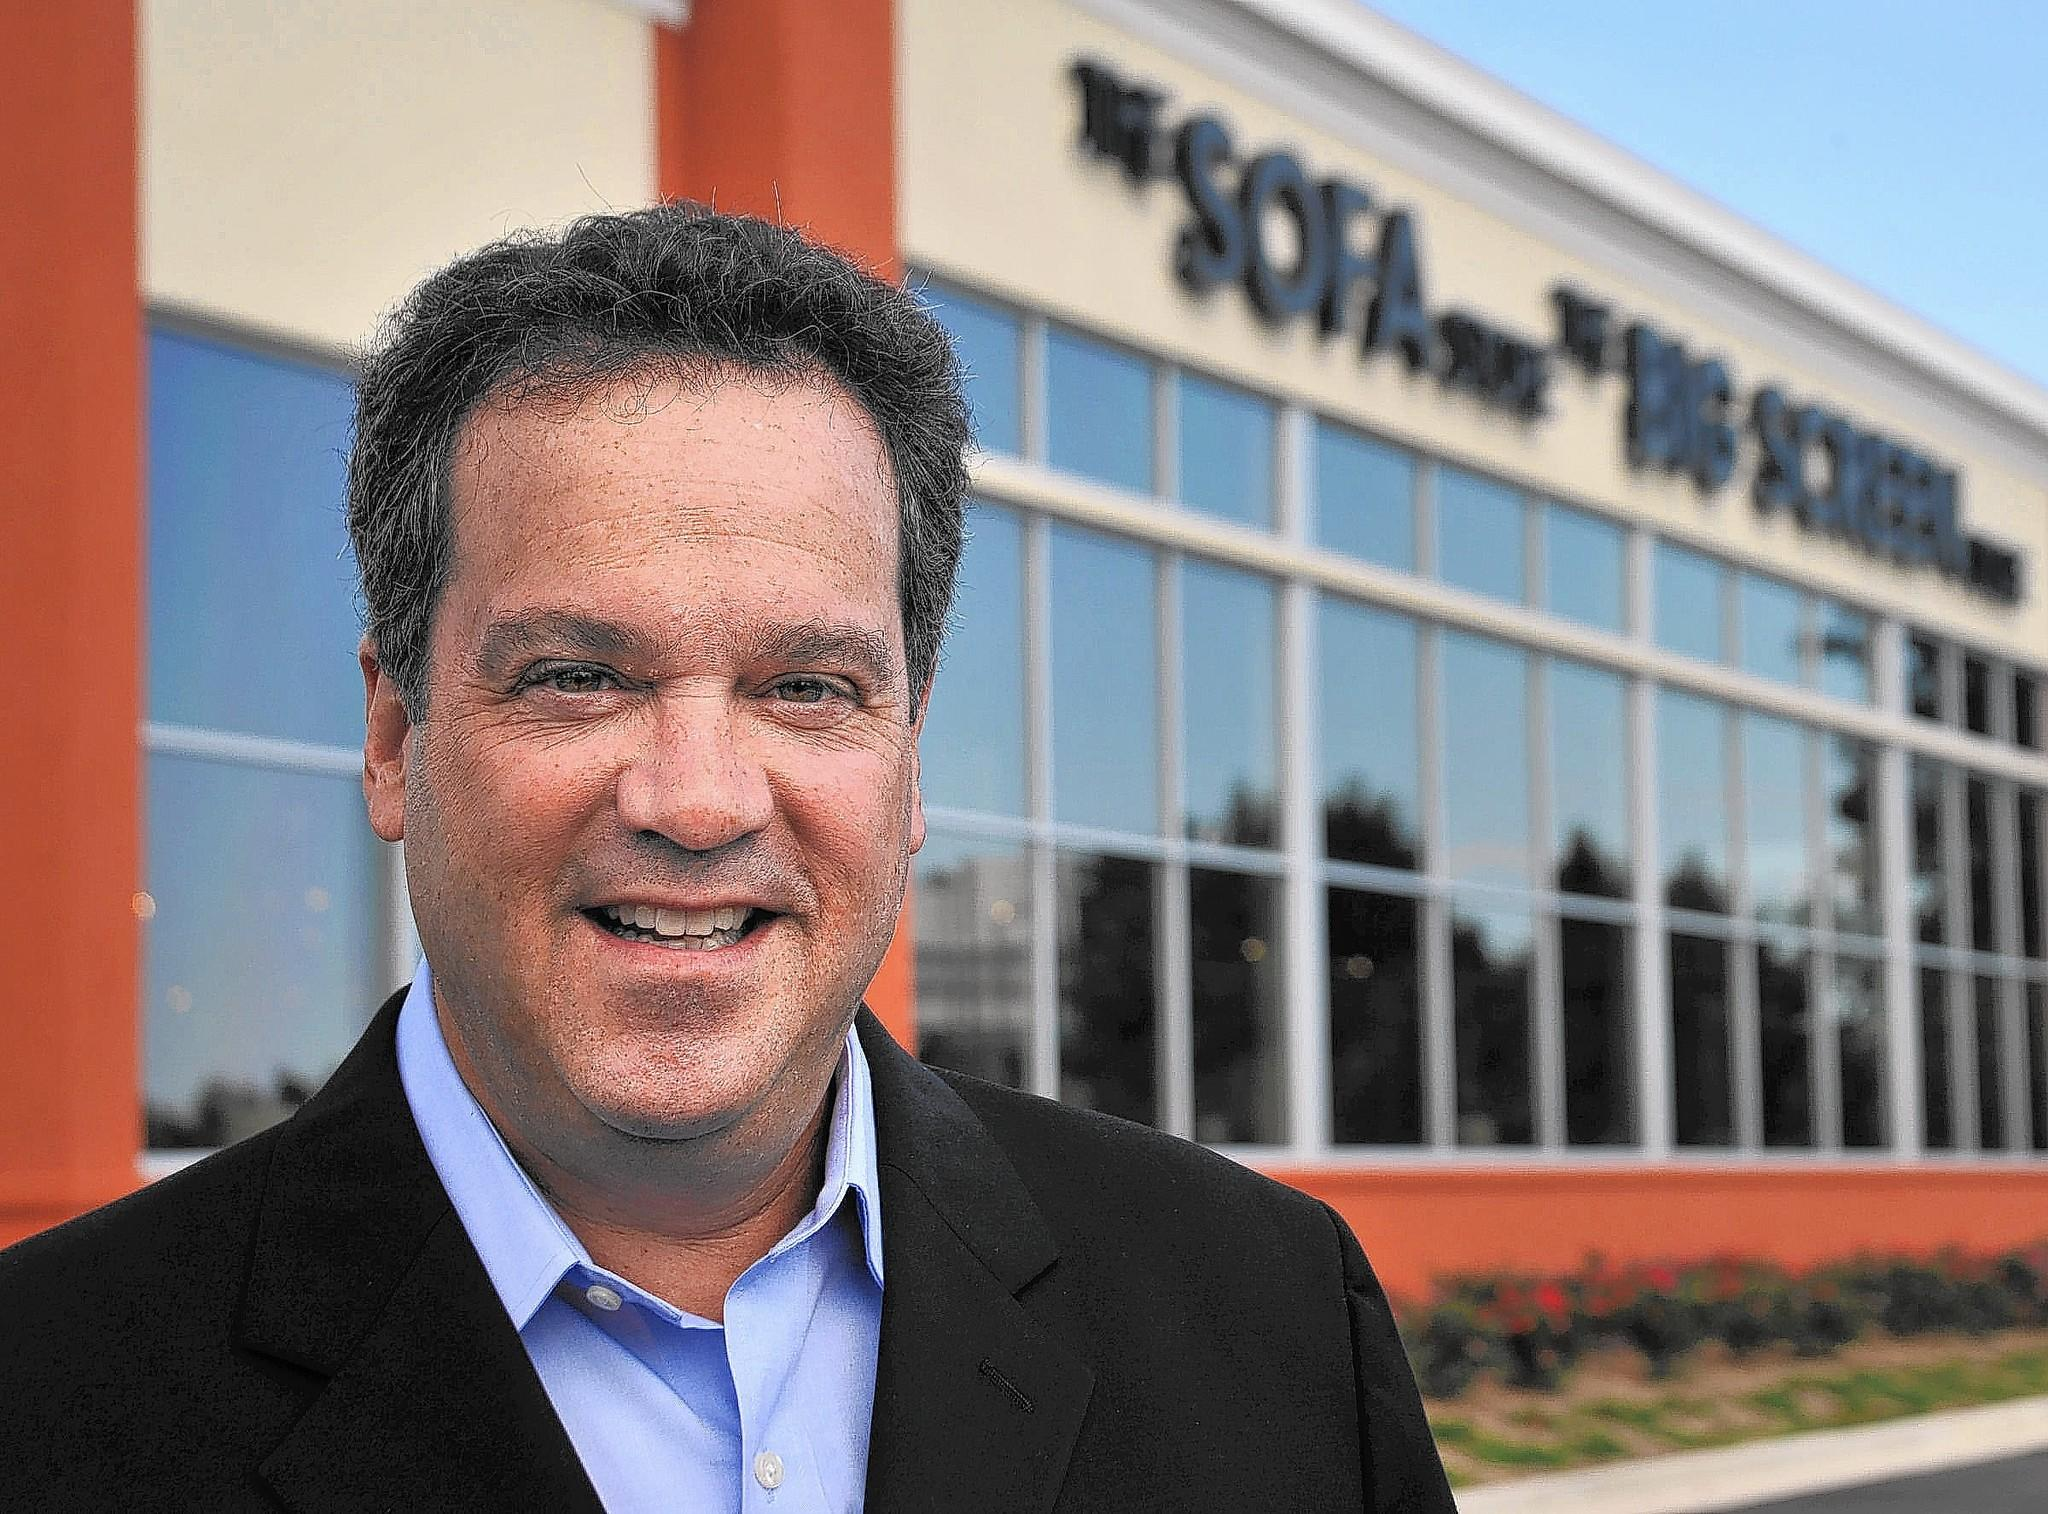 Kevin Luskin is co-owner of the new combination outlet of The Sofa Store and The Big Screen Store in Glen Burnie.